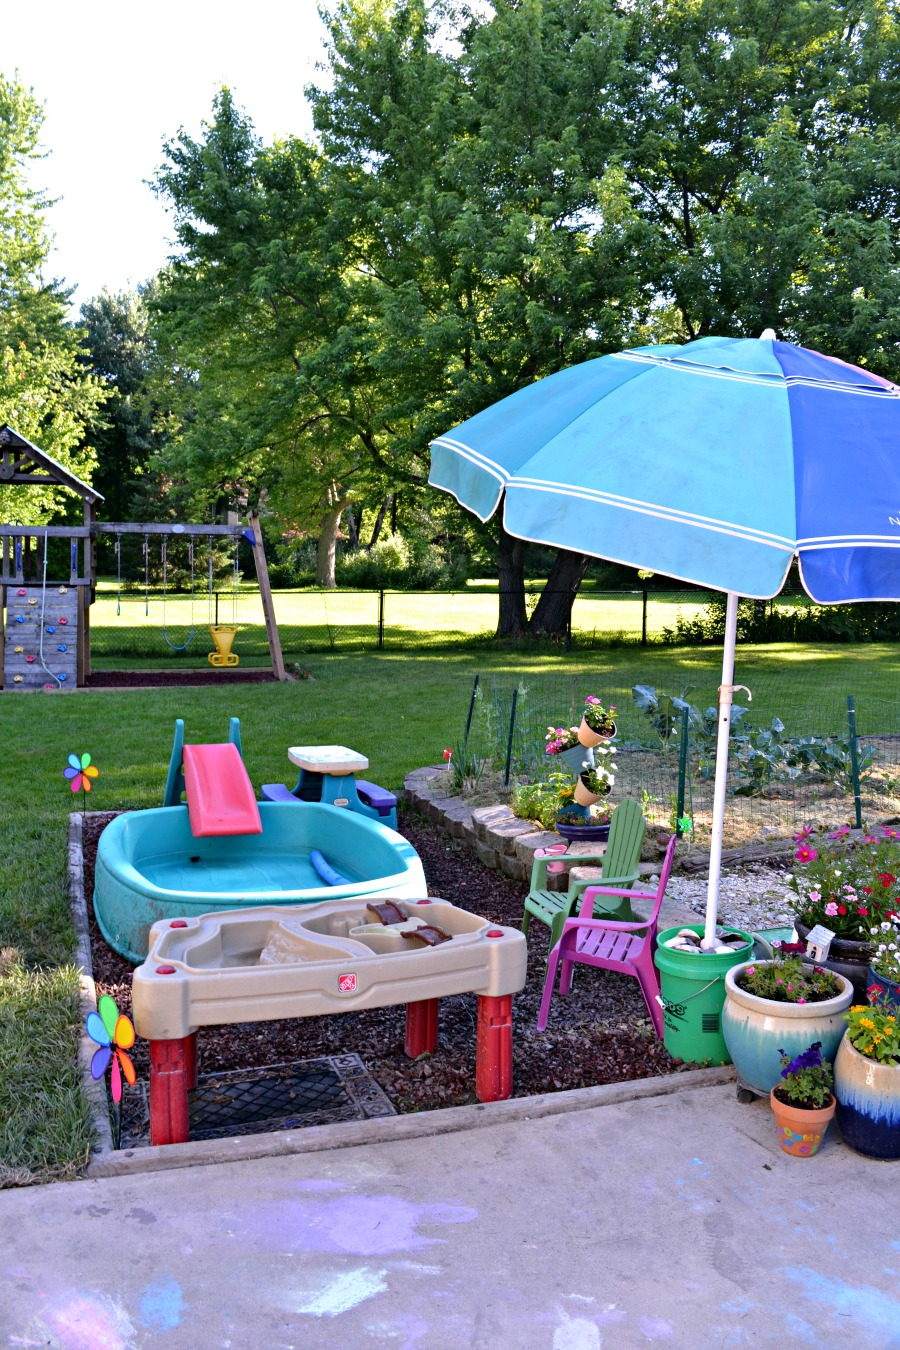 DIY patio set | painted patio furniture | backyard for kids with thrift  store and garage sale finds - Backyard For Young Kids - Refresh Living